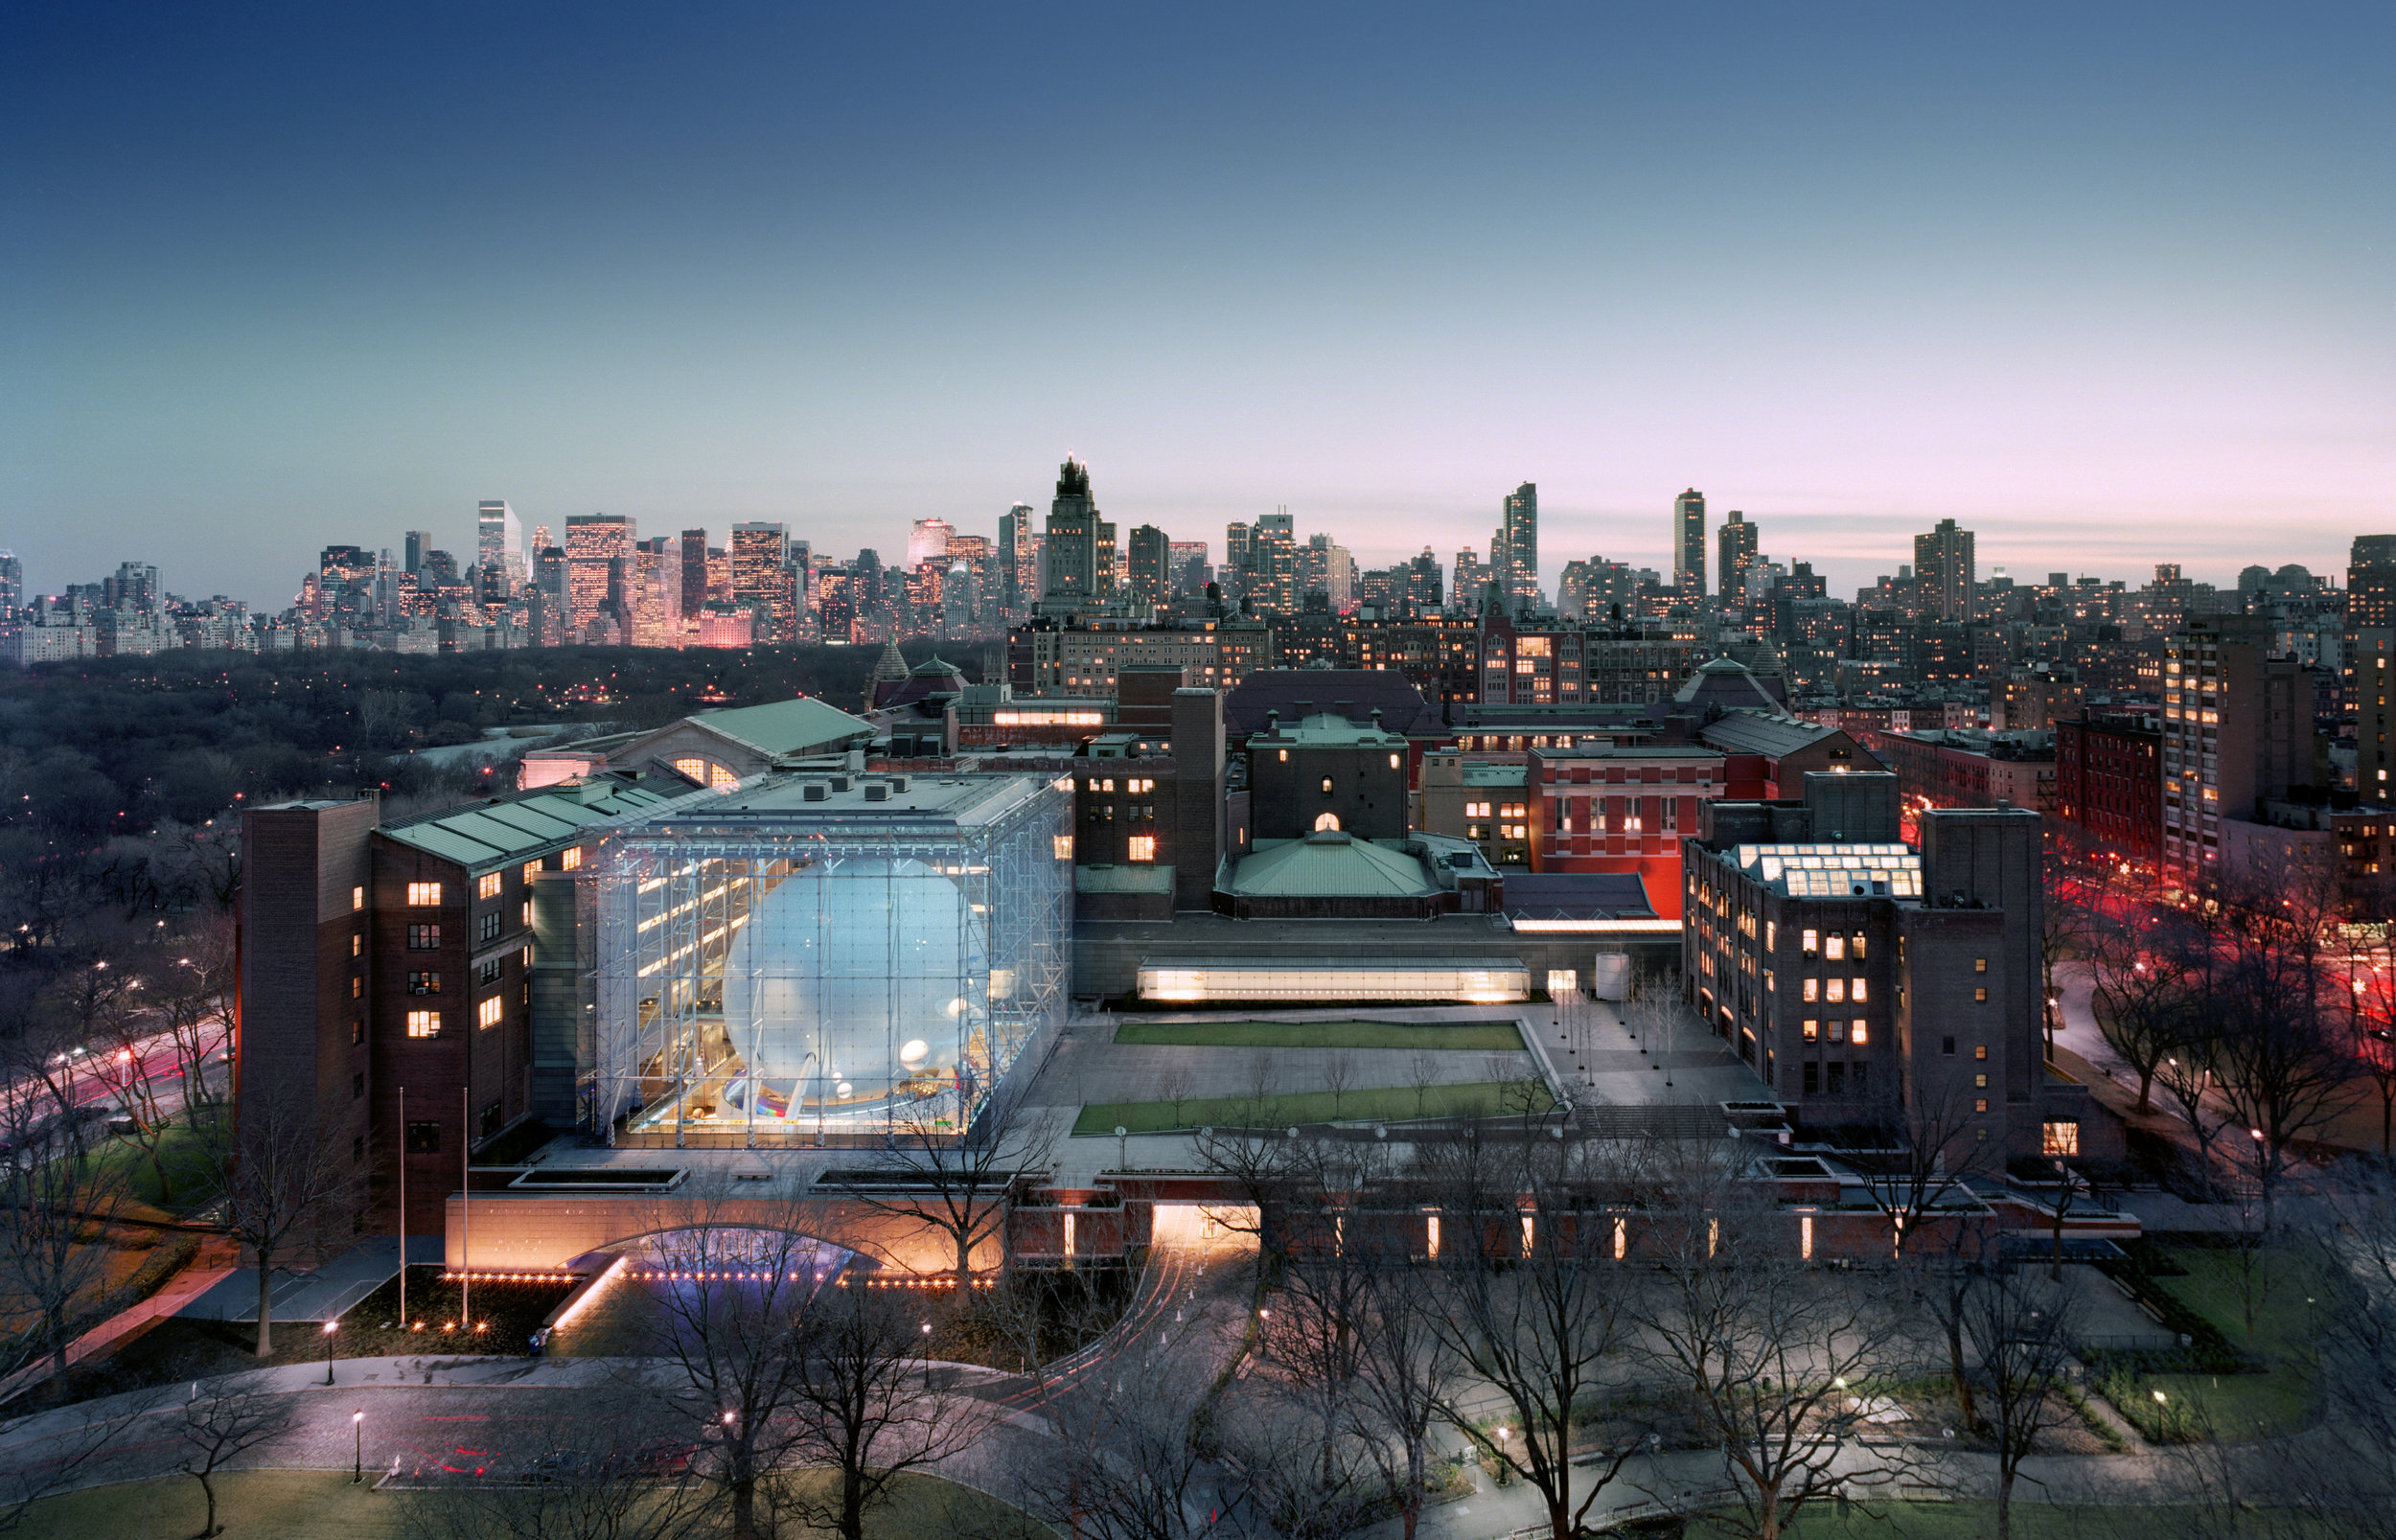 American Museum of Natural History, Rose Center for Earth and Space photo credit Jeff Goldberg Esto.jpg